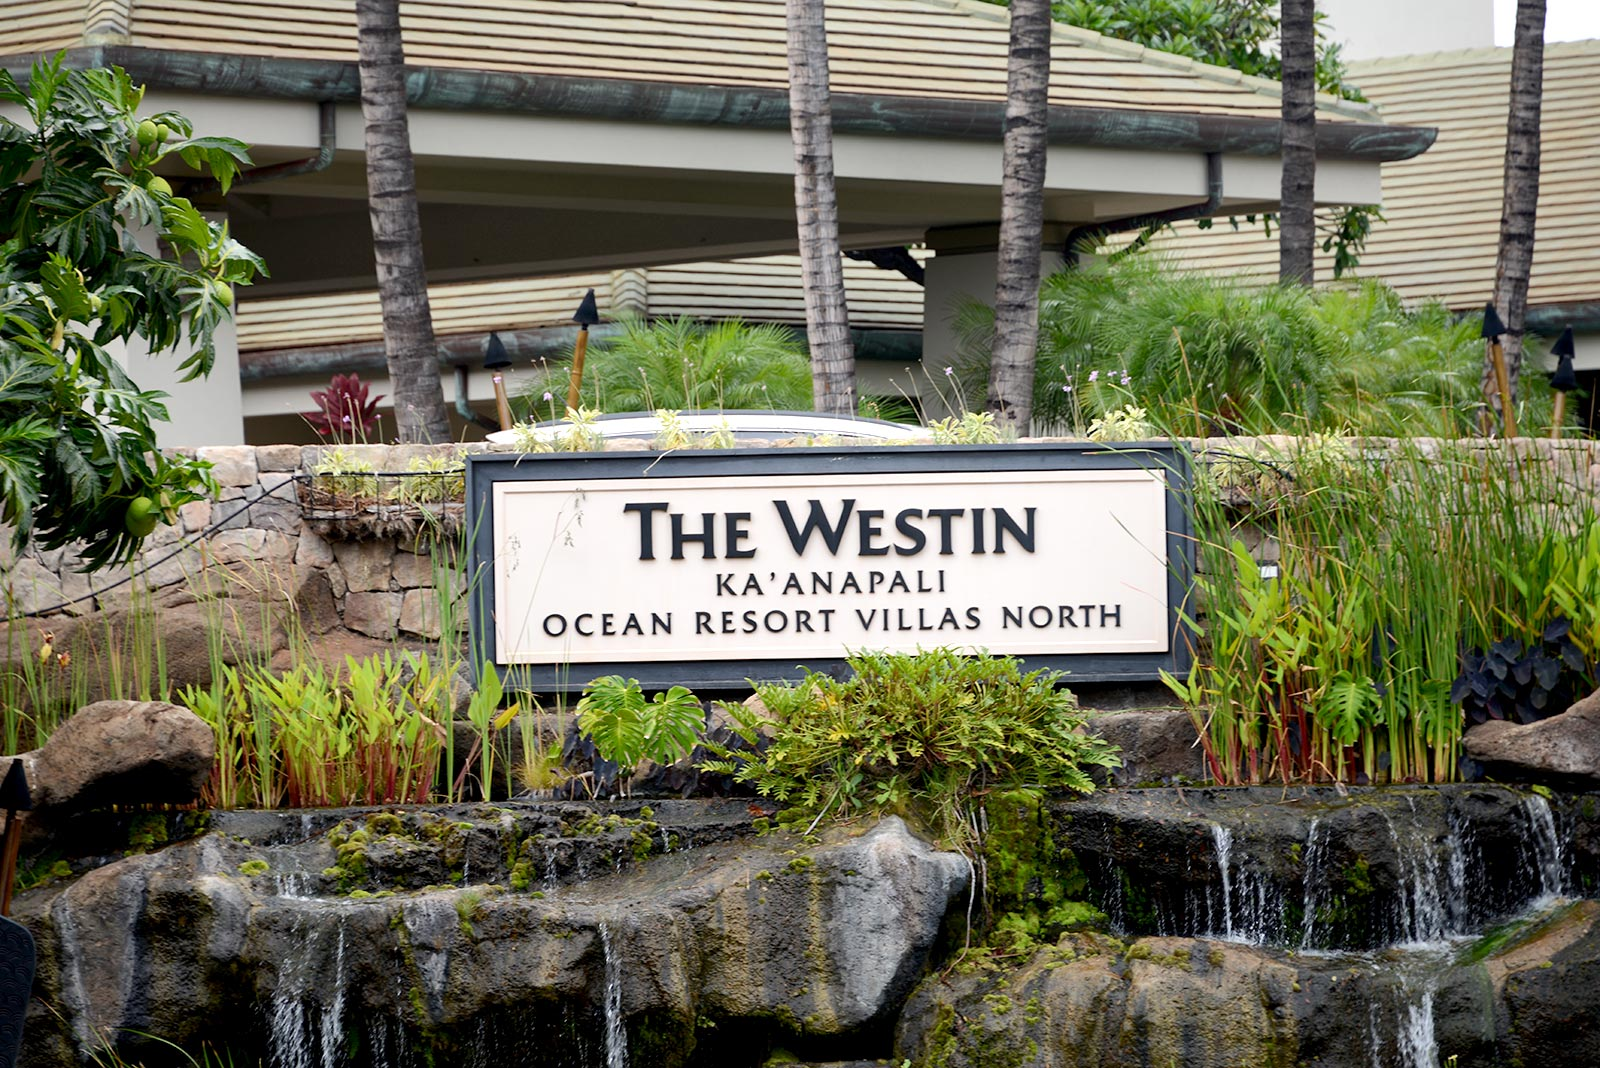 Westin Kanaapali Ocean Resort Villas North timeshare resales